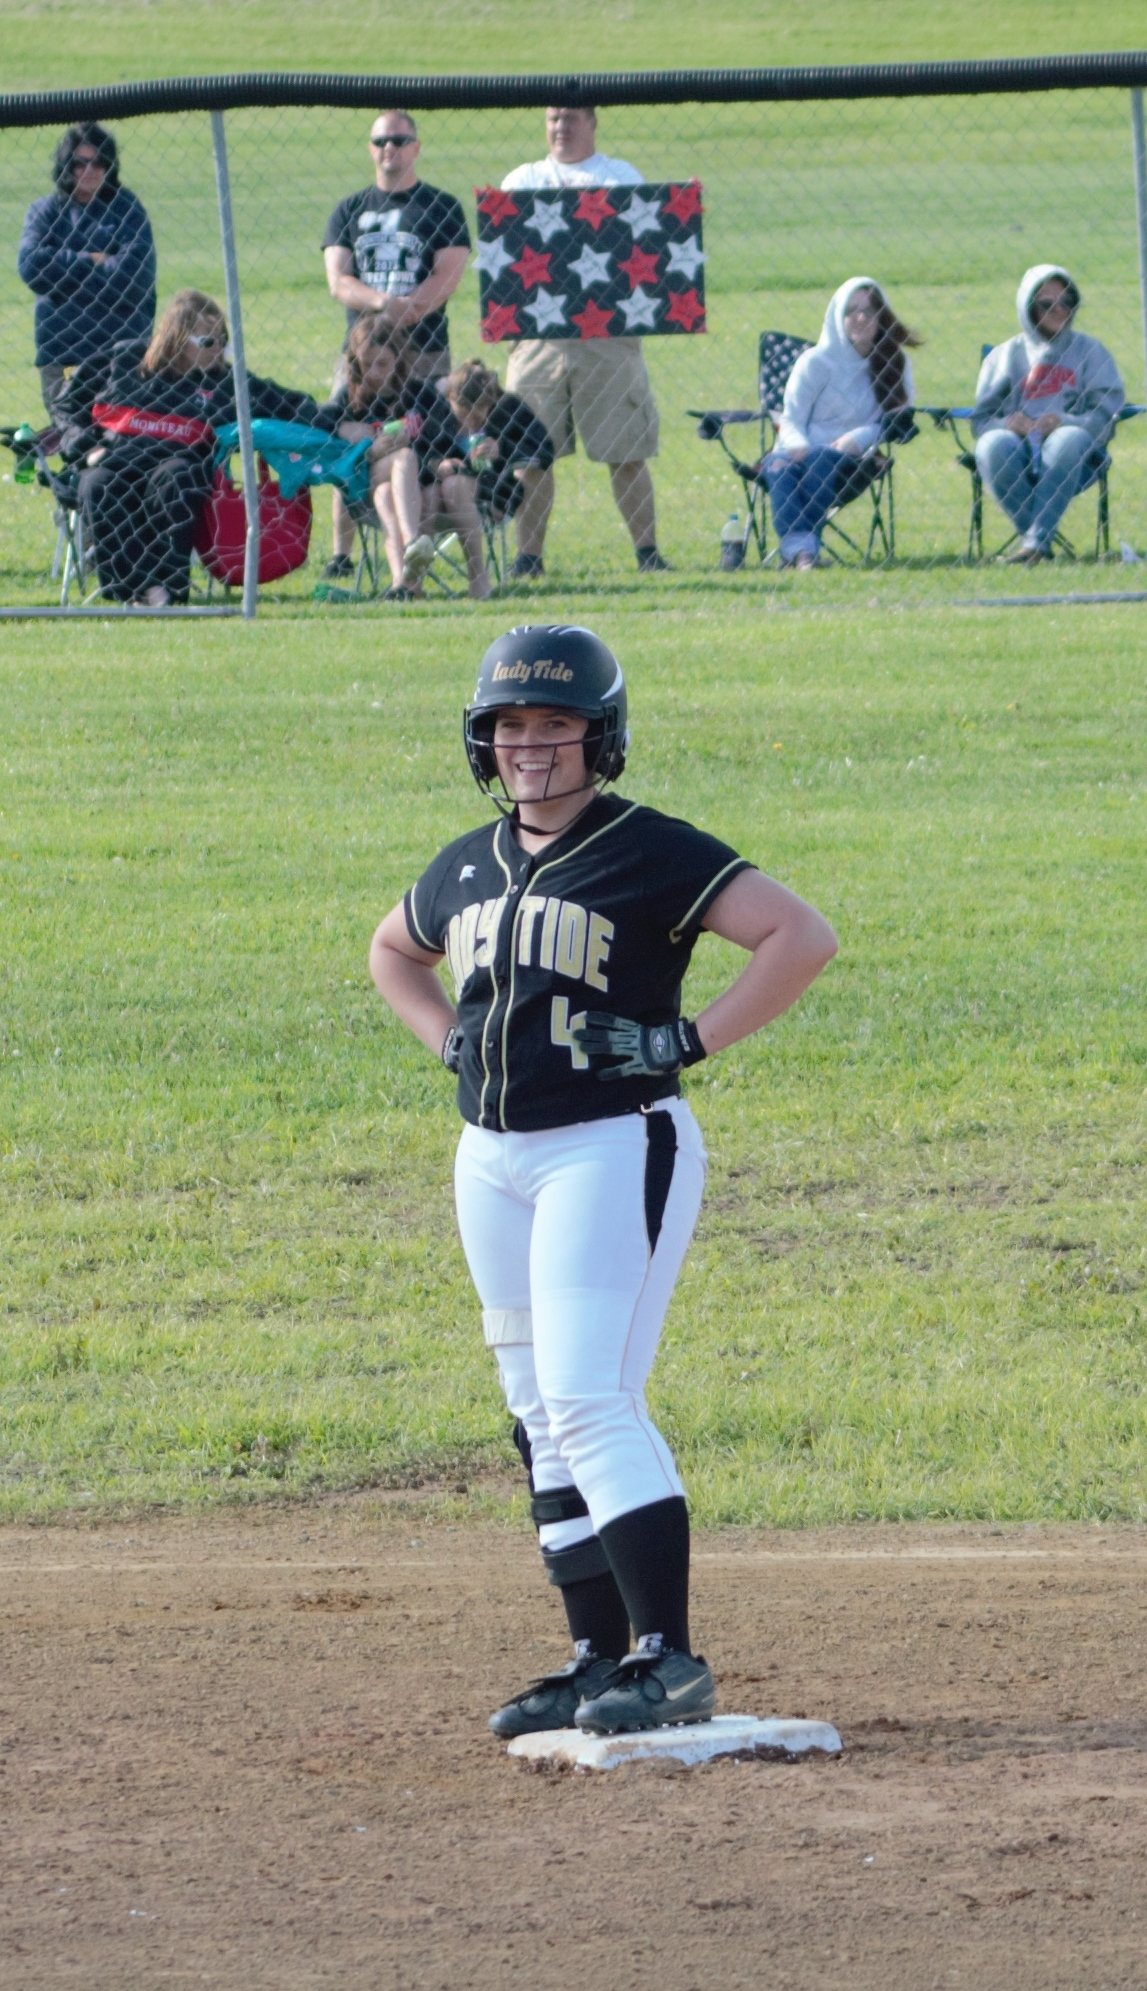 Lady Tide Blanked By Unbeaten Moniteau 4-0 In D-9 Semifinals